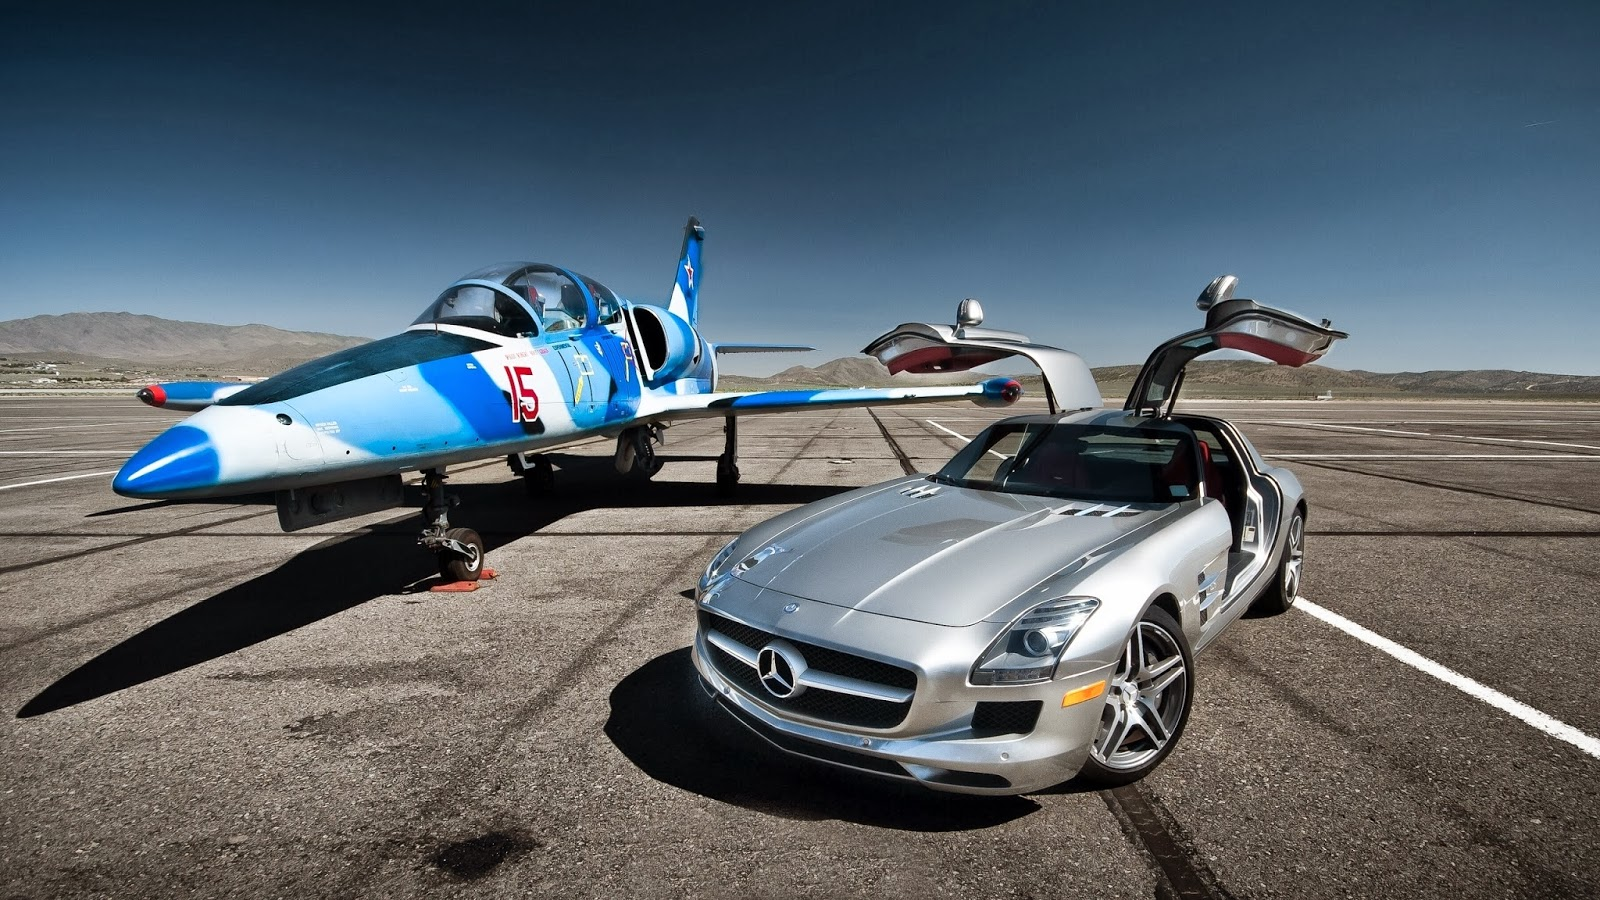 Windows 8 hd wallpapers cars hd wallpapers part 2 - Car wallpaper for windows xp ...